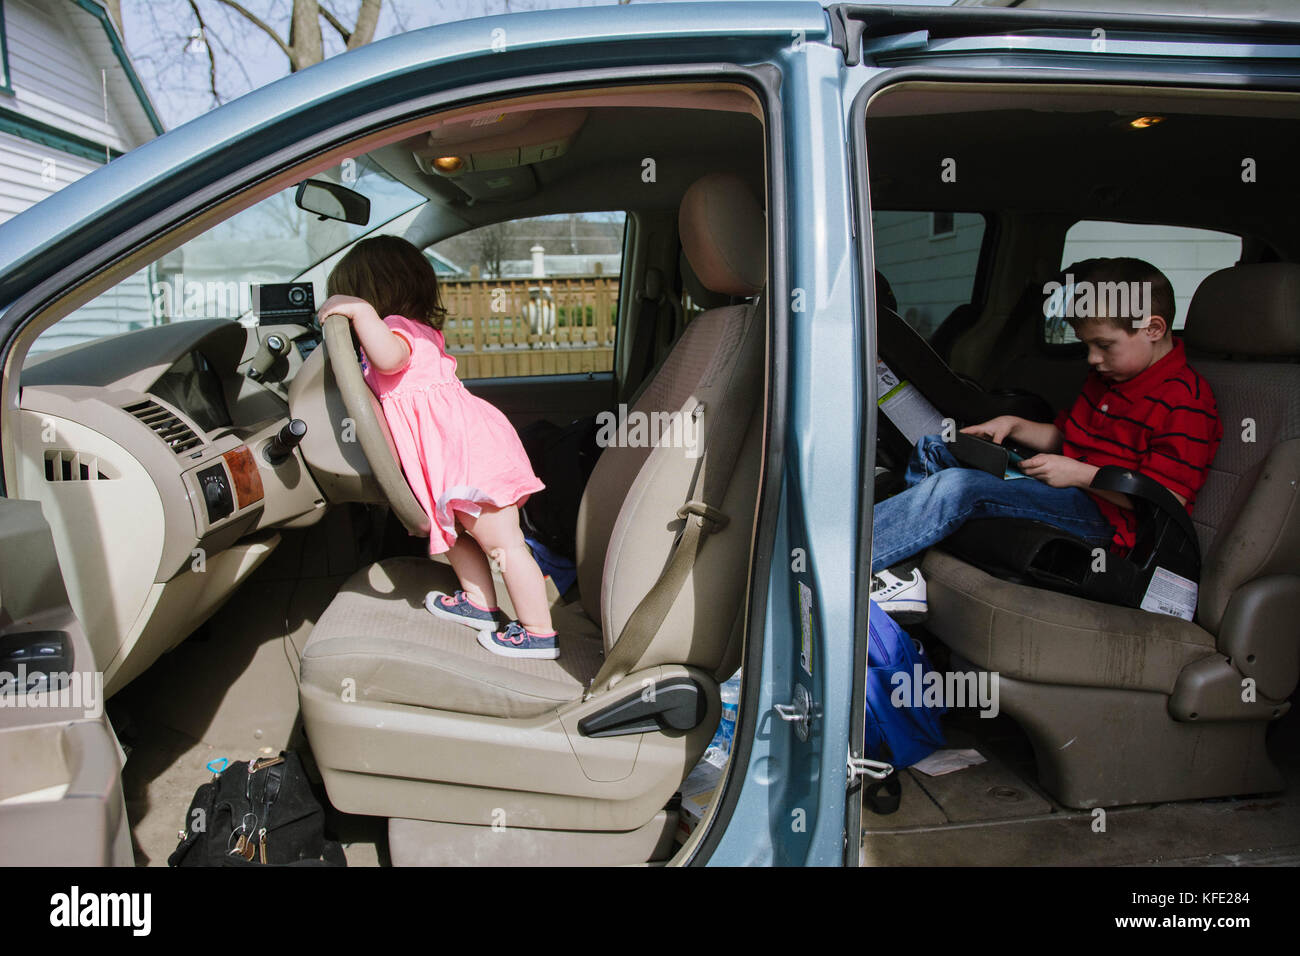 Two children in a van. - Stock Image